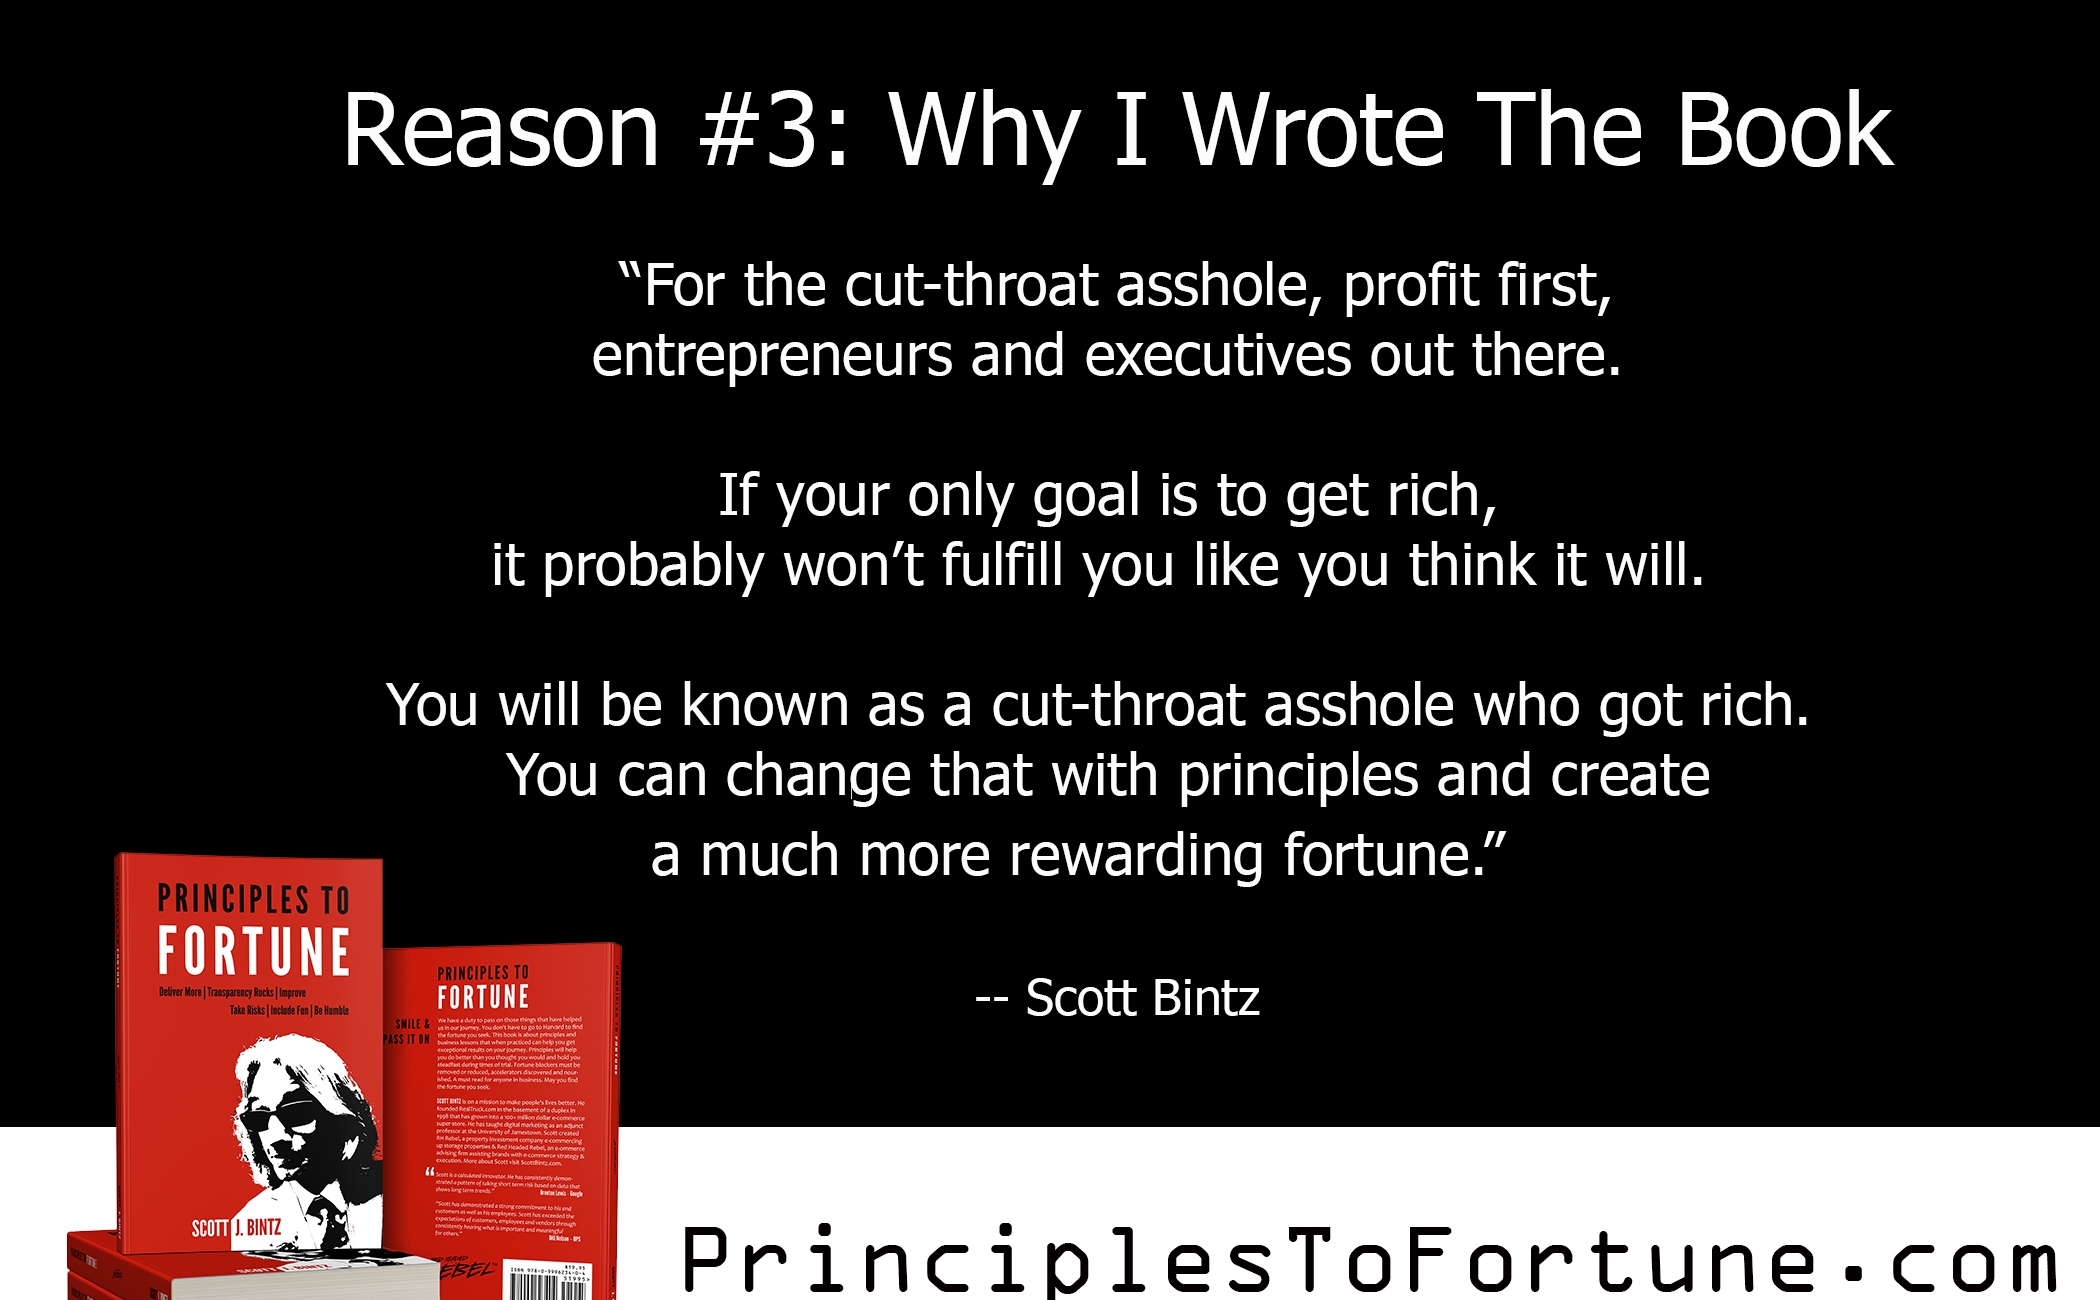 Reason 3: Why I Wrote The Book Principles To Fortune